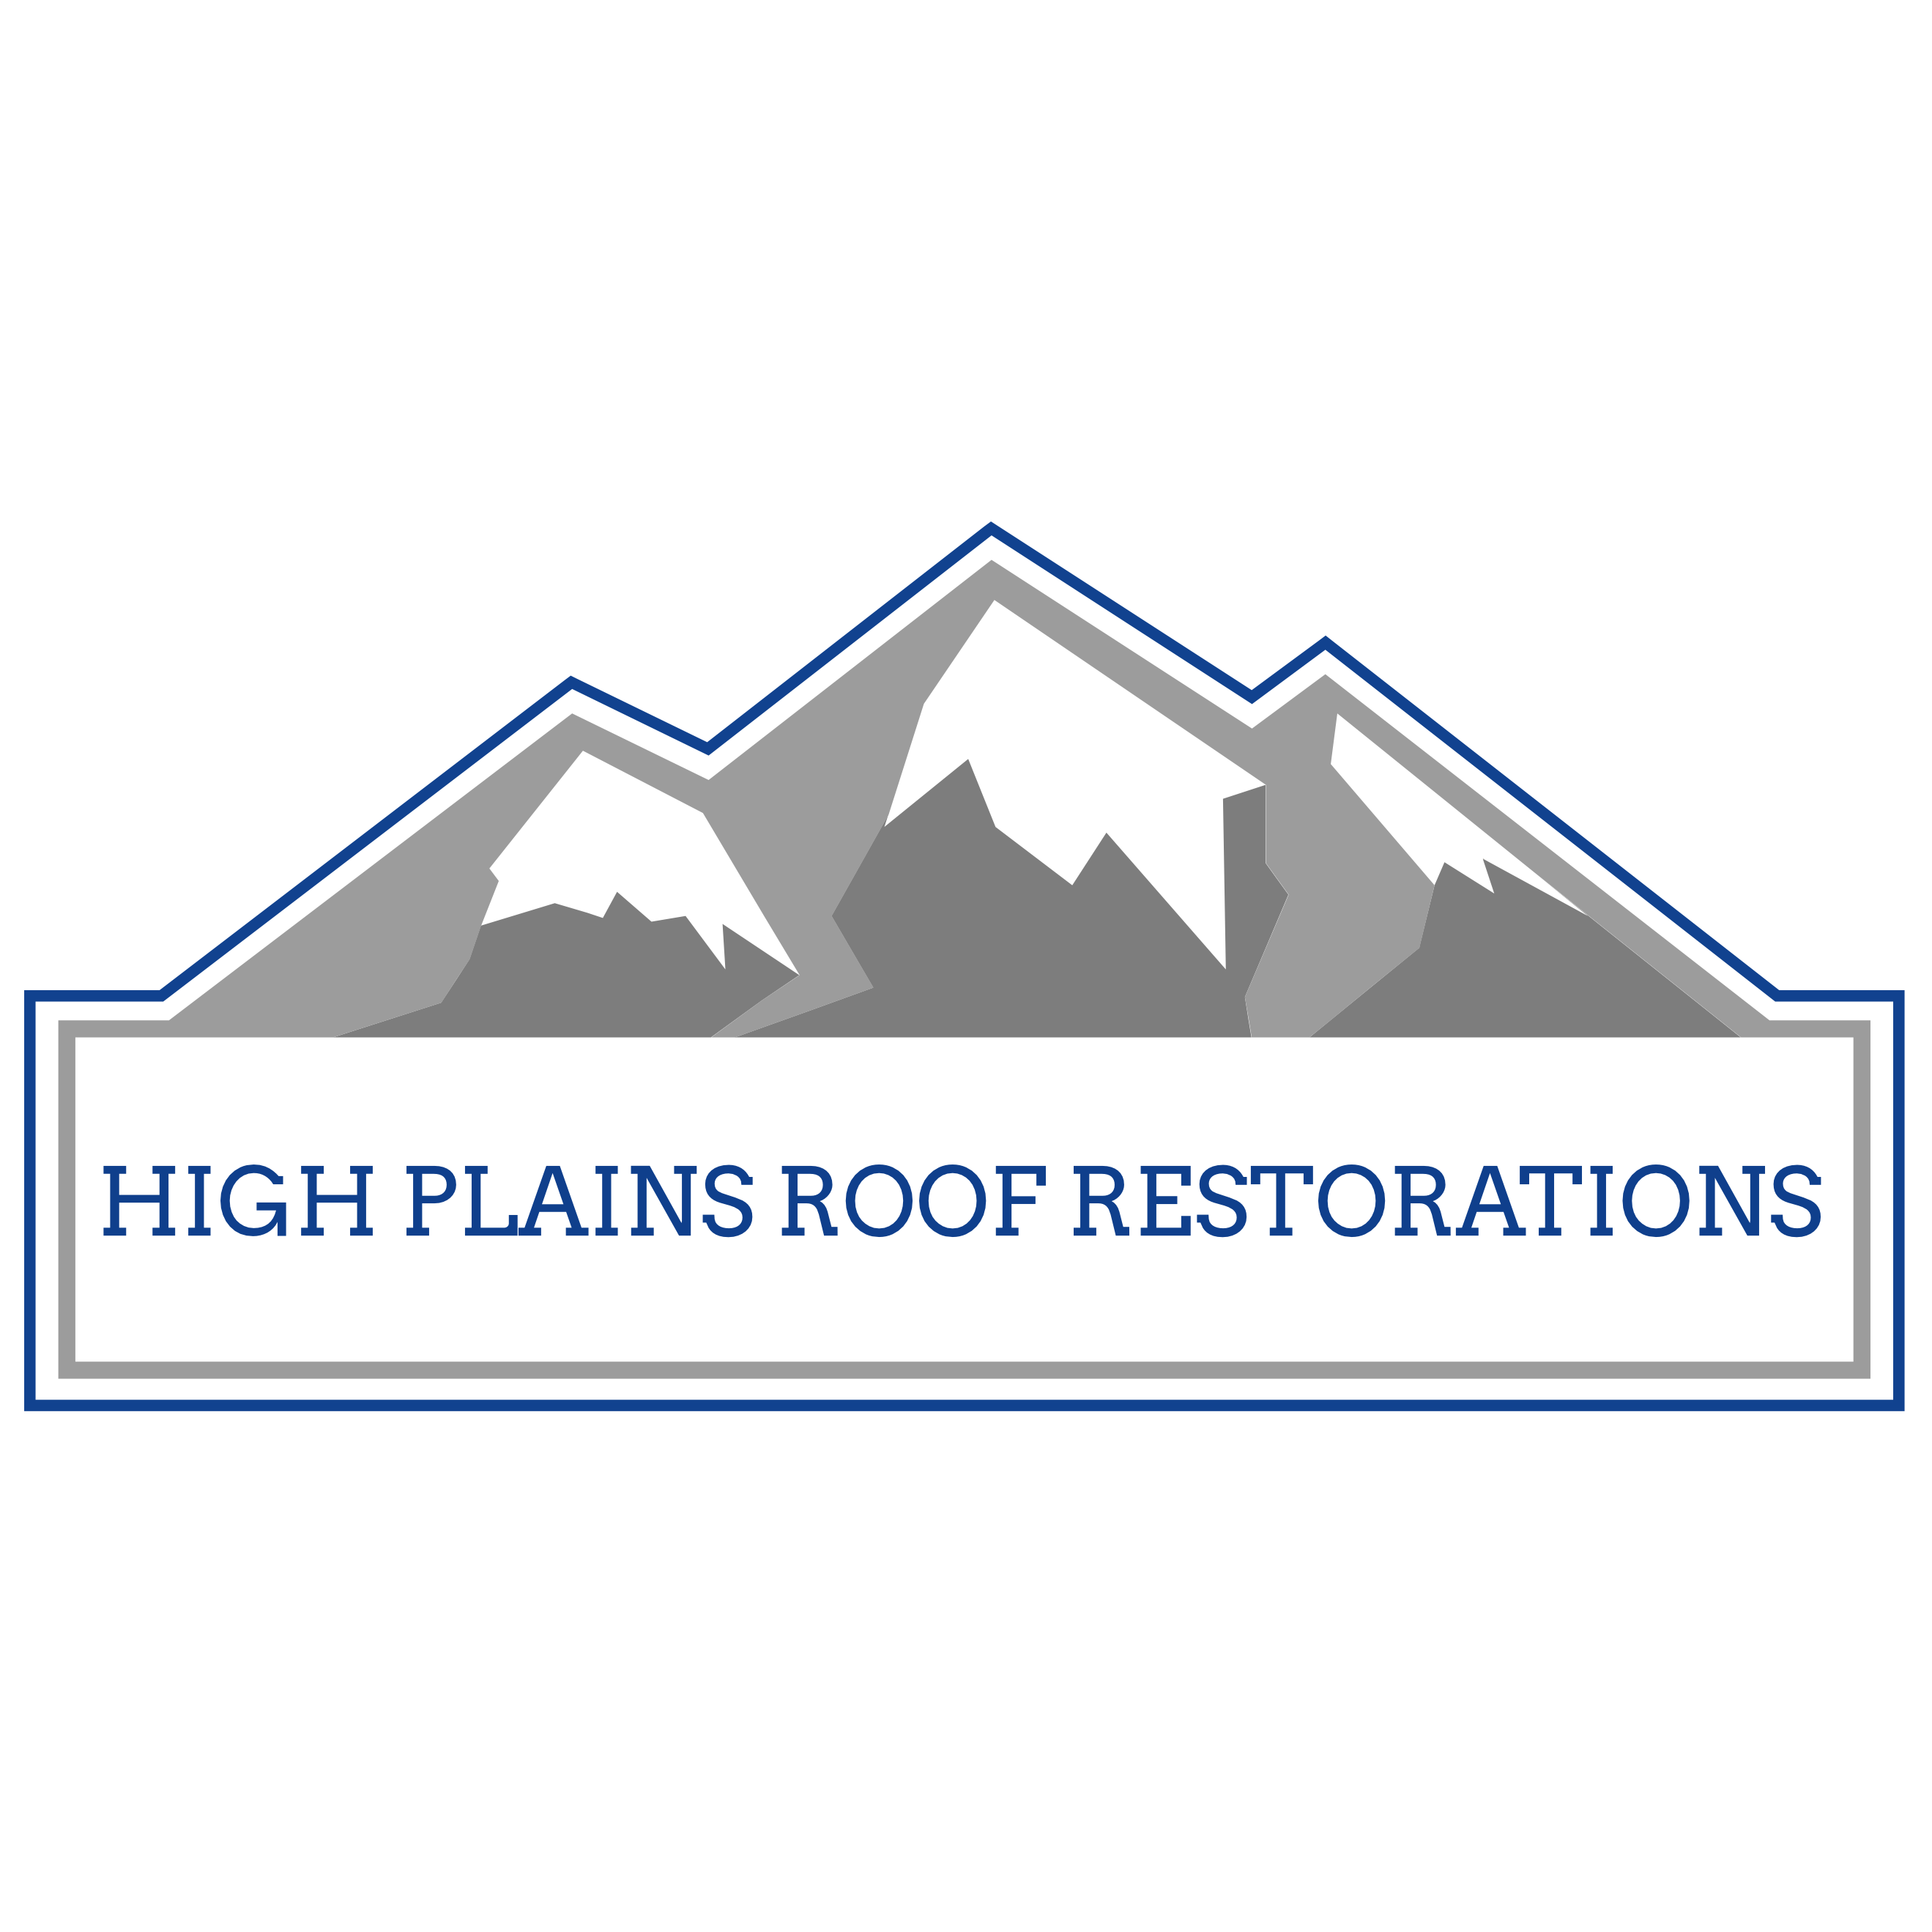 High Plains Roof Restoration